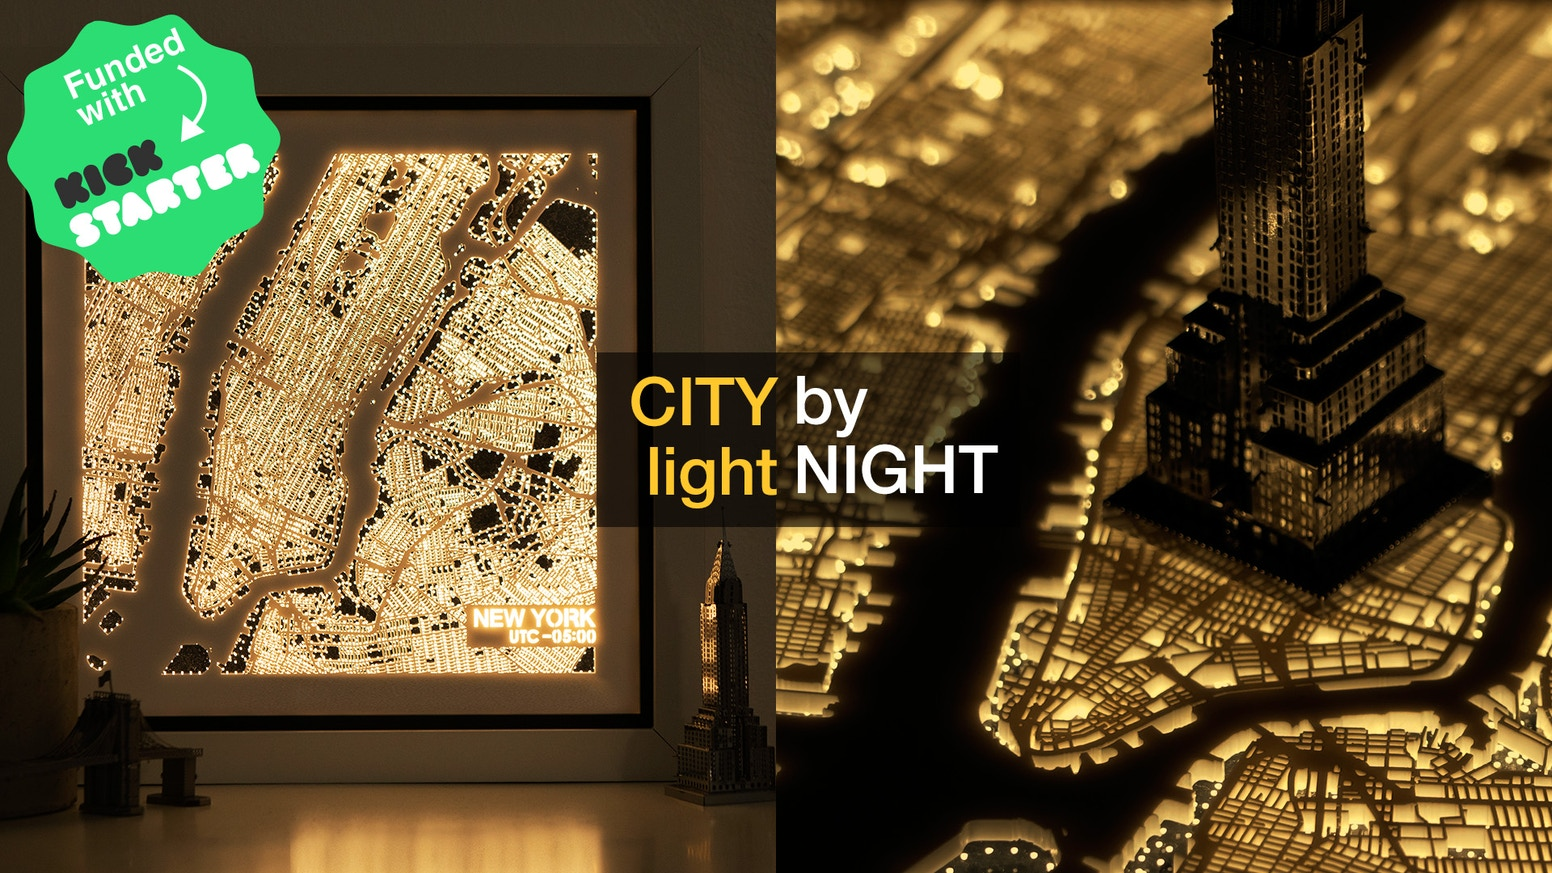 A decoration lamp display famous city maps from around the world. Style your home in the day, and experience the city light at night.